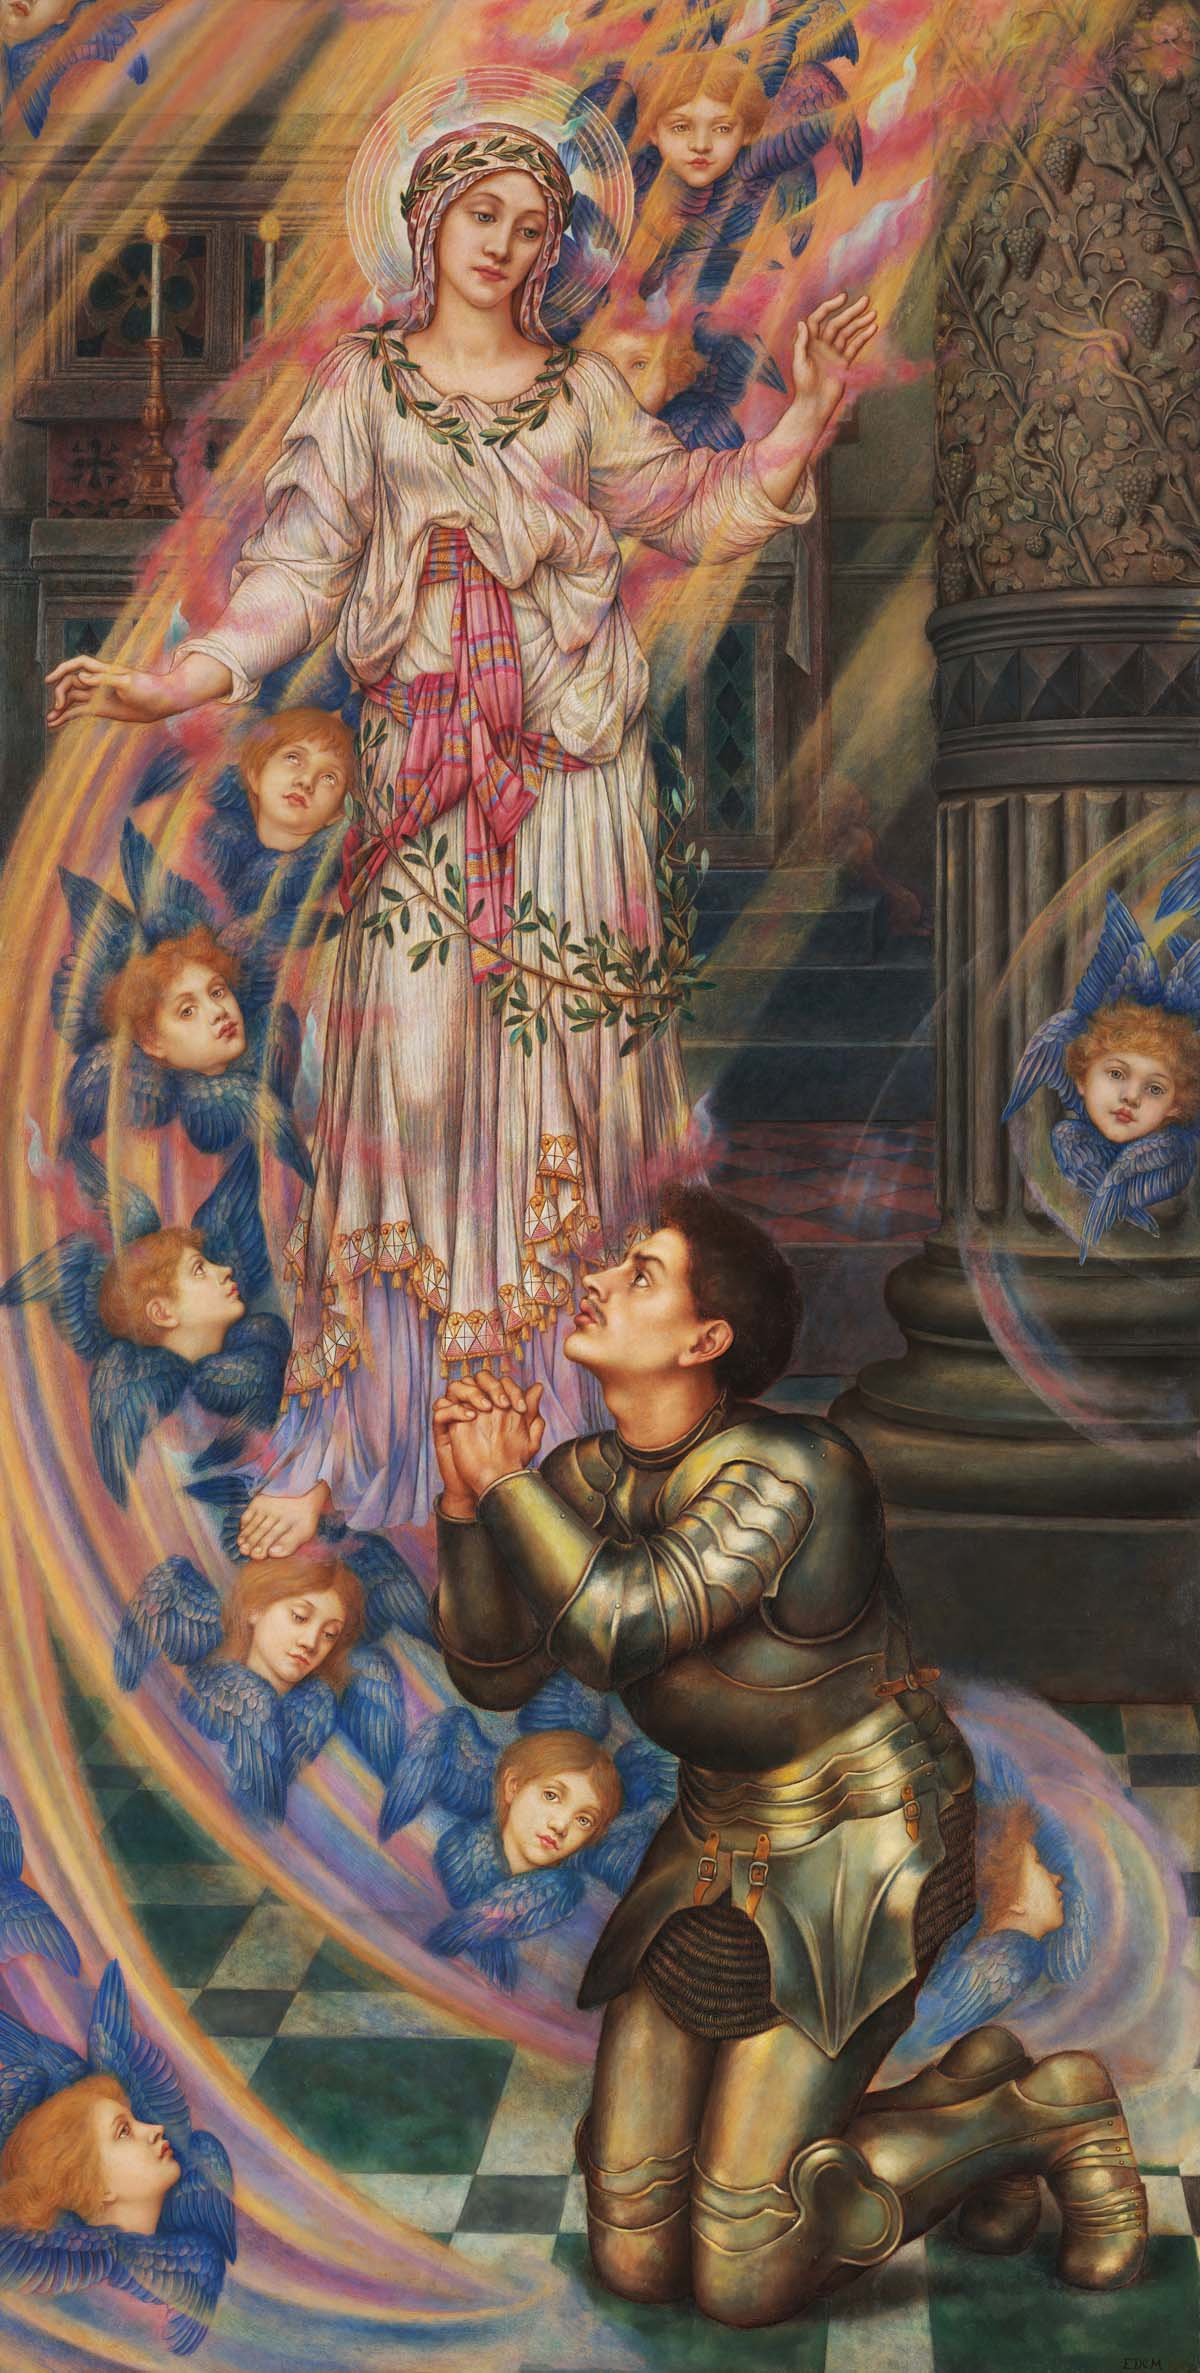 painting of a knight in armour praying before a swirling mist of faces and an ethereal female figure